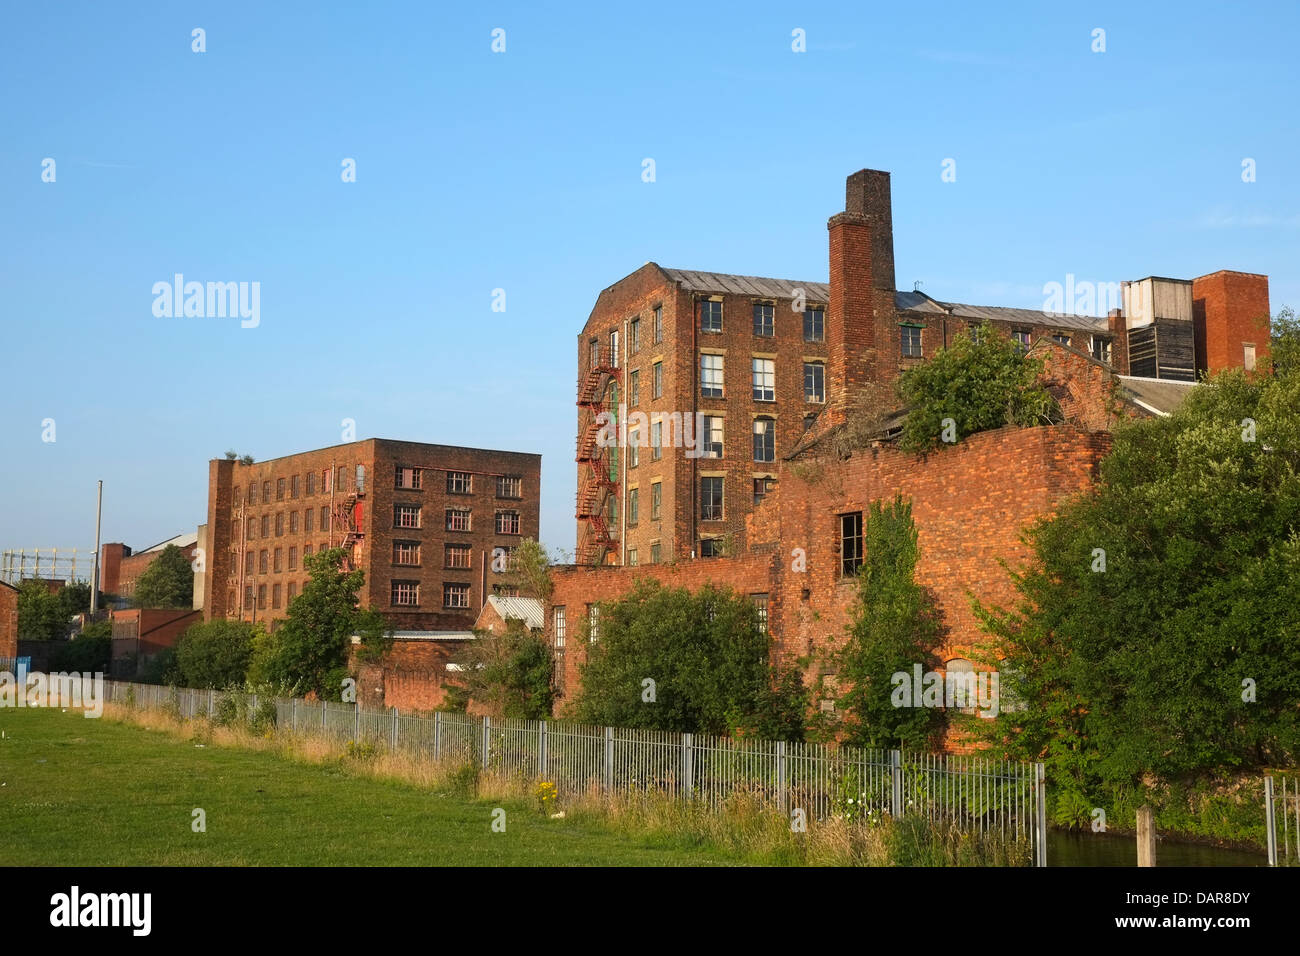 England, Manchester, Islington, derelict mills and warehouses - Stock Image